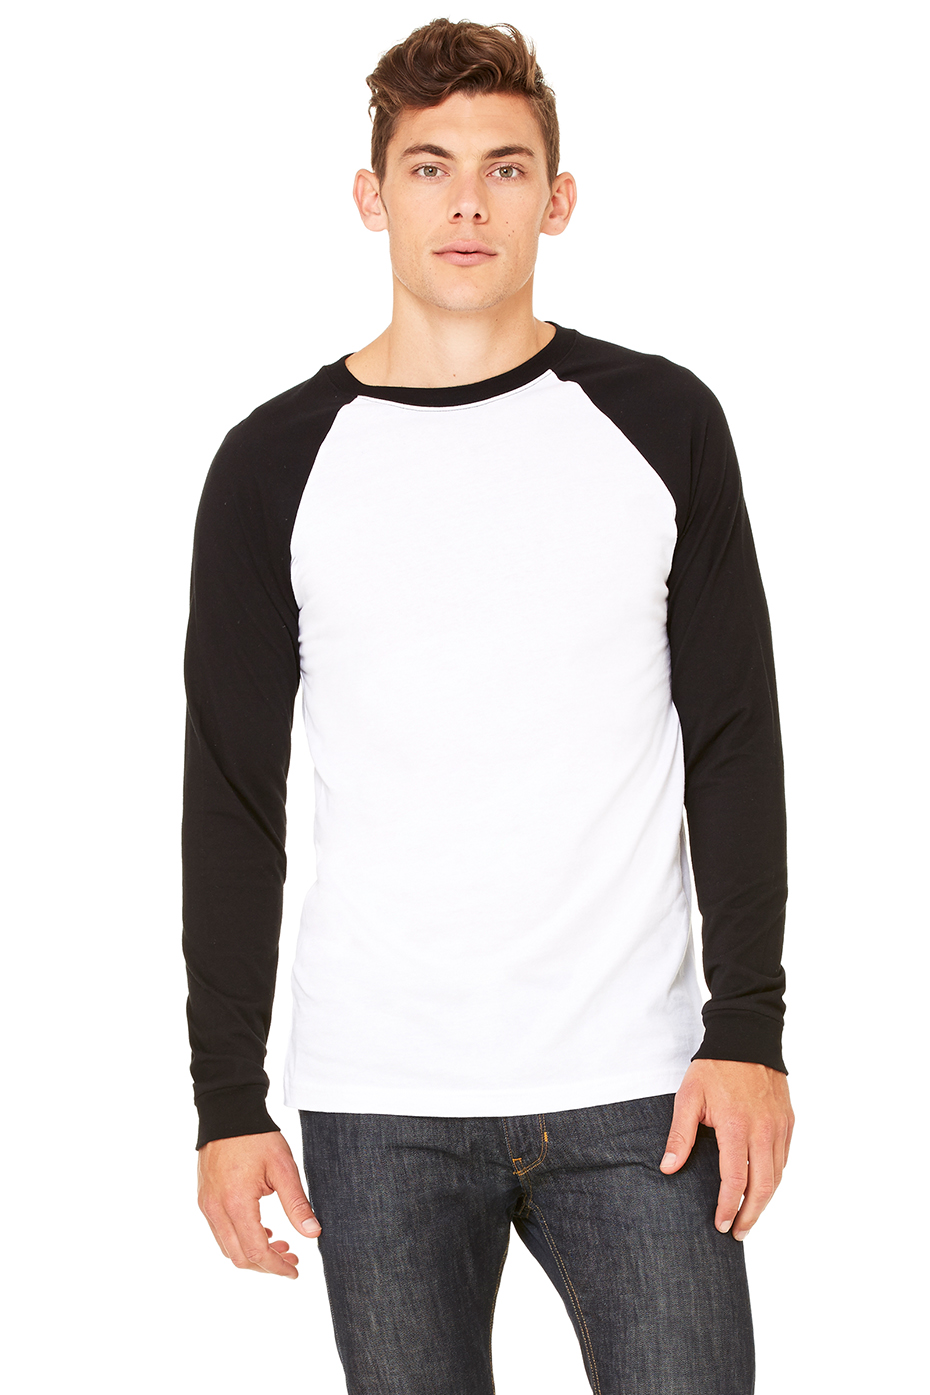 Men S Suits On Pinterest: Men's Jersey Long Sleeve Baseball Tee